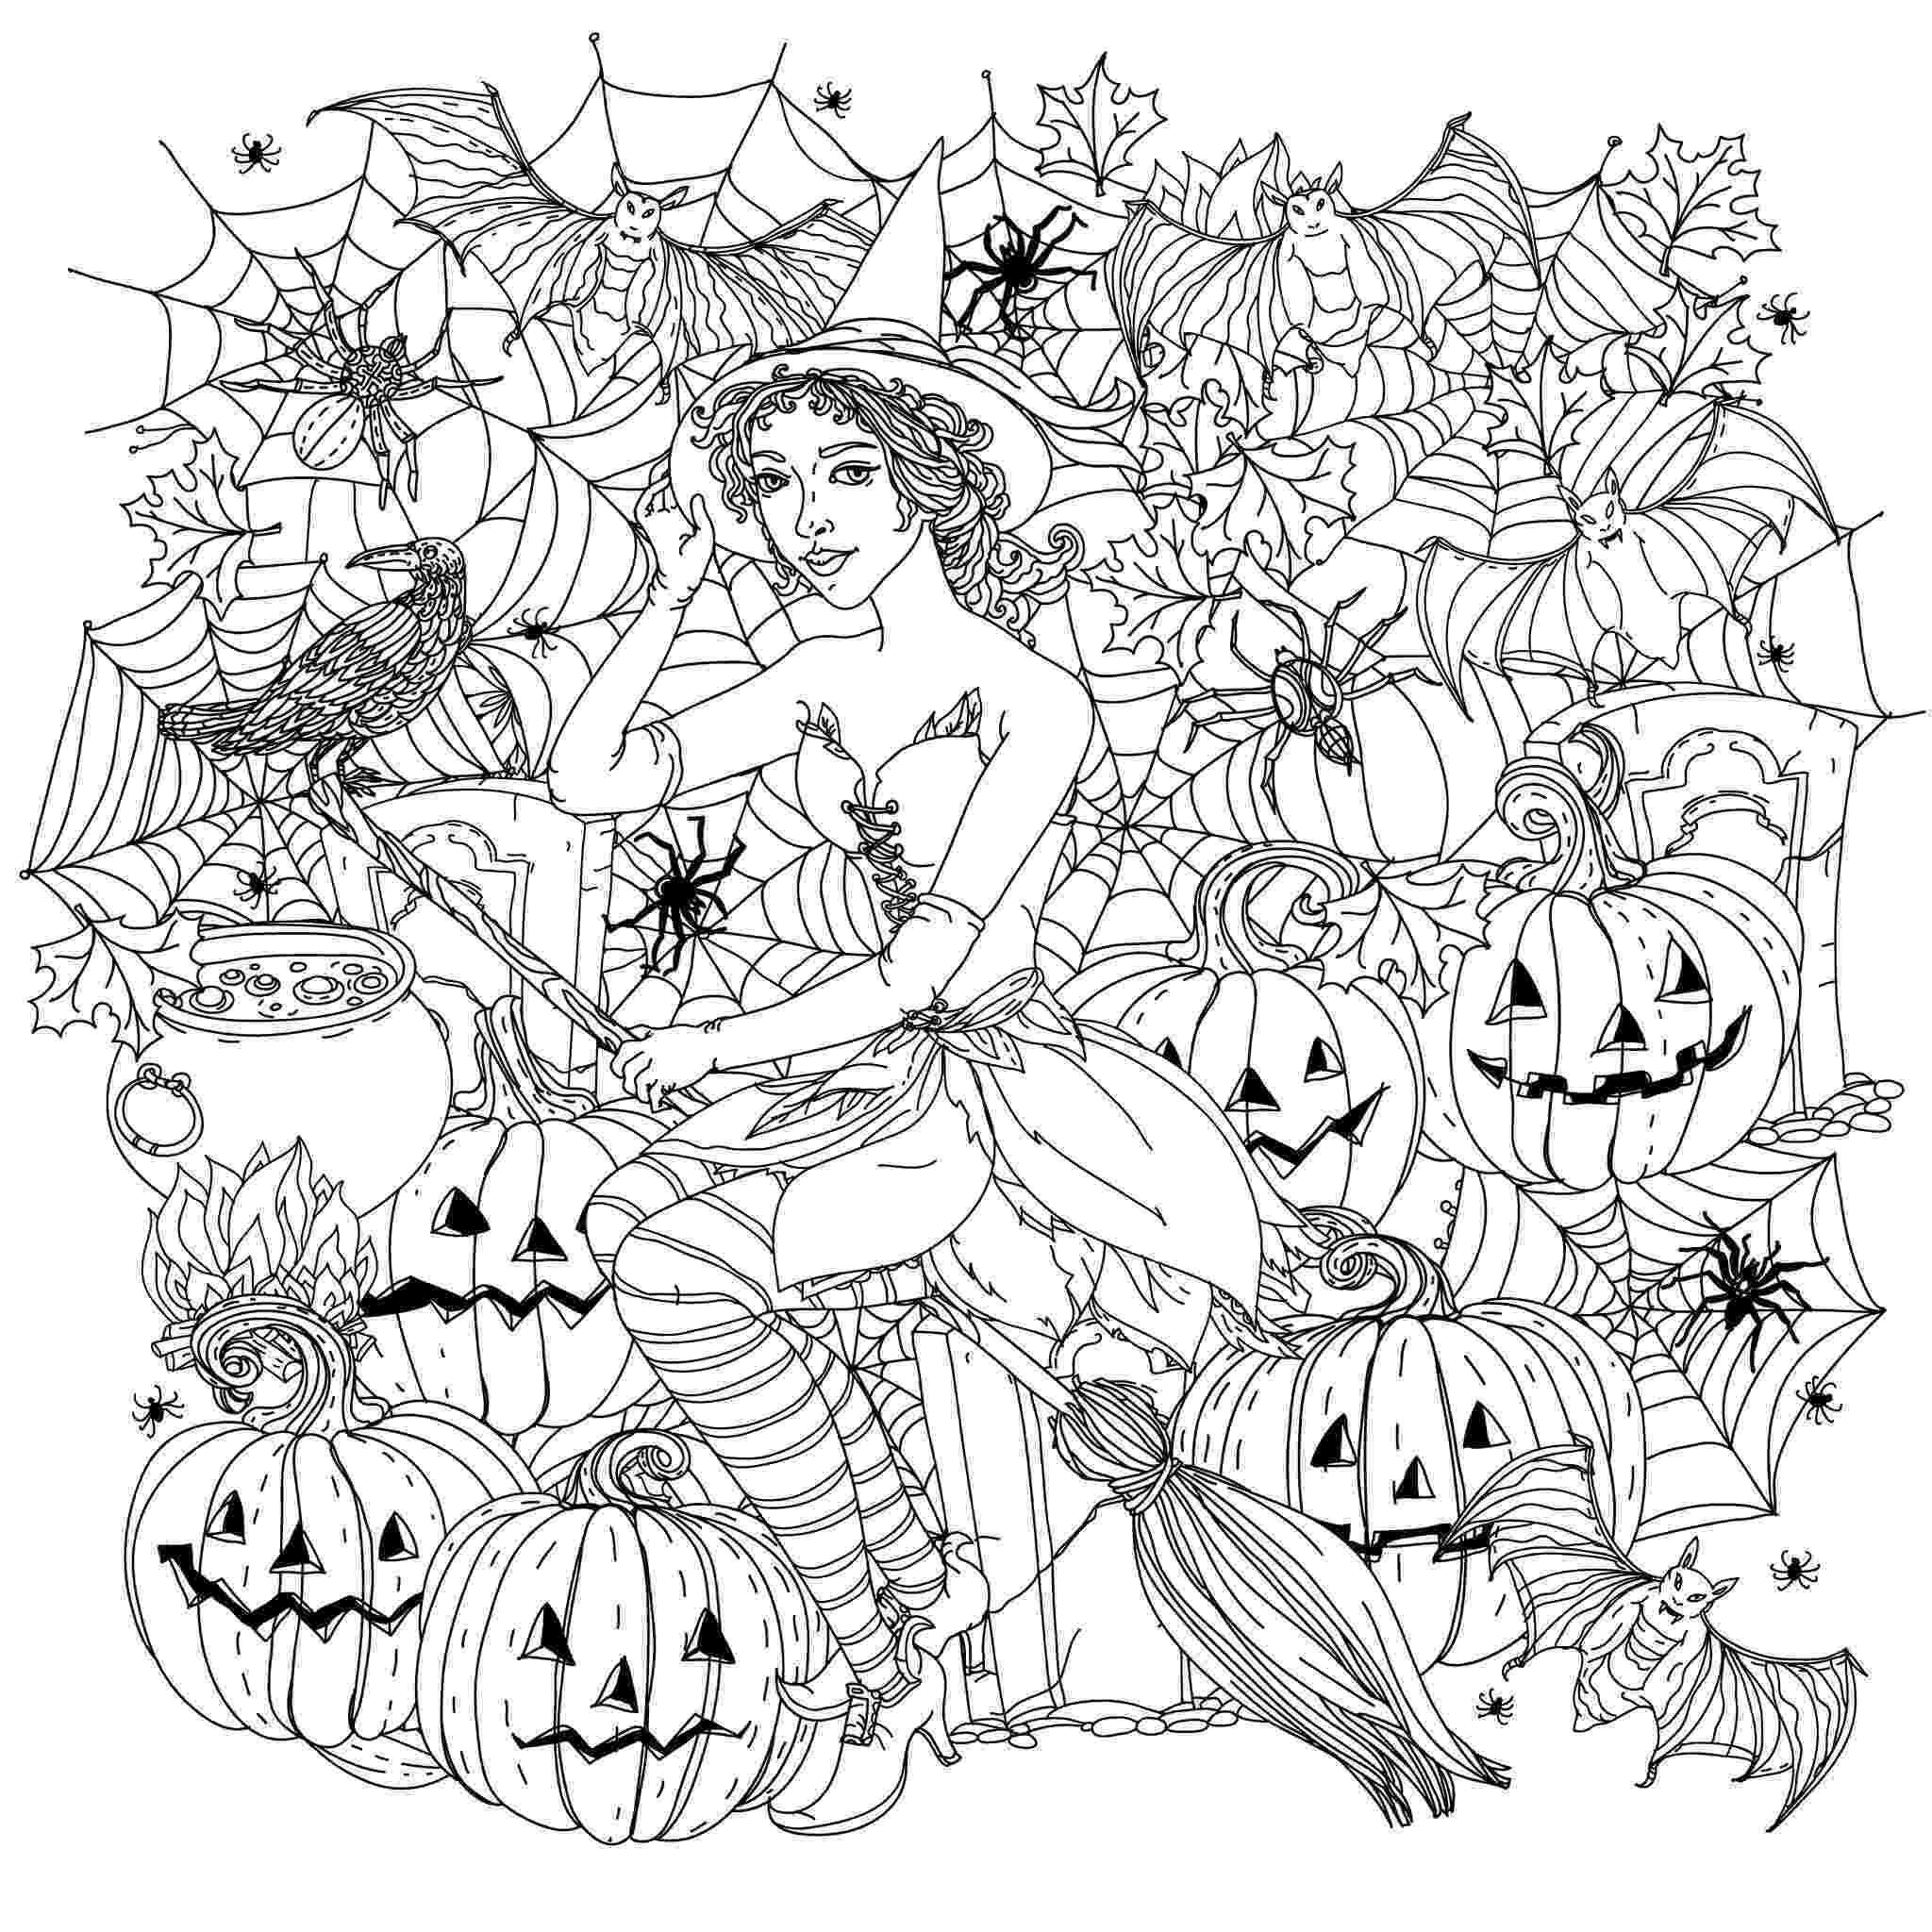 coloring pages for adults halloween free halloween coloring pages for adults kids coloring pages for halloween adults